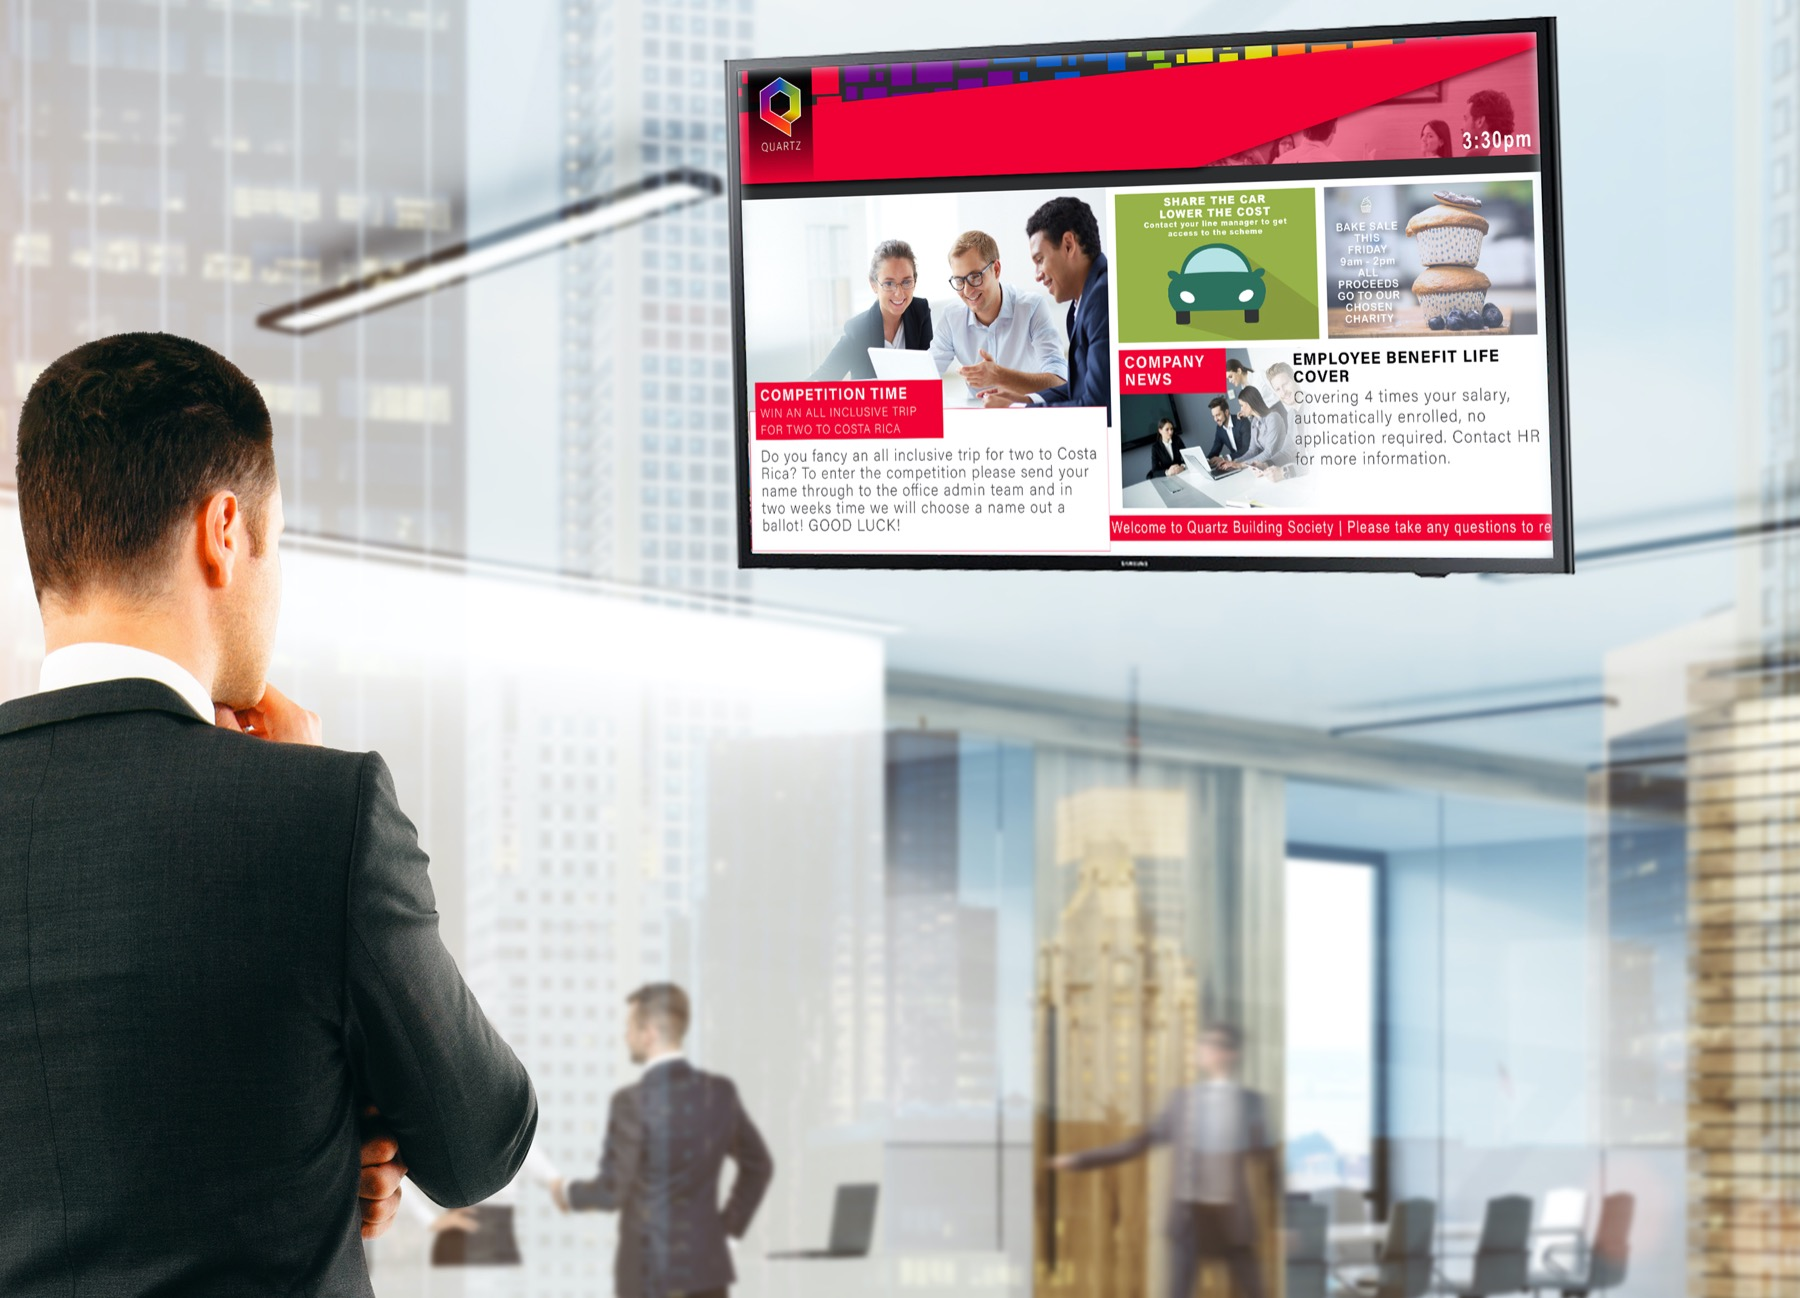 man in suit looking digital signage tv mounted on a wall in a lobby room